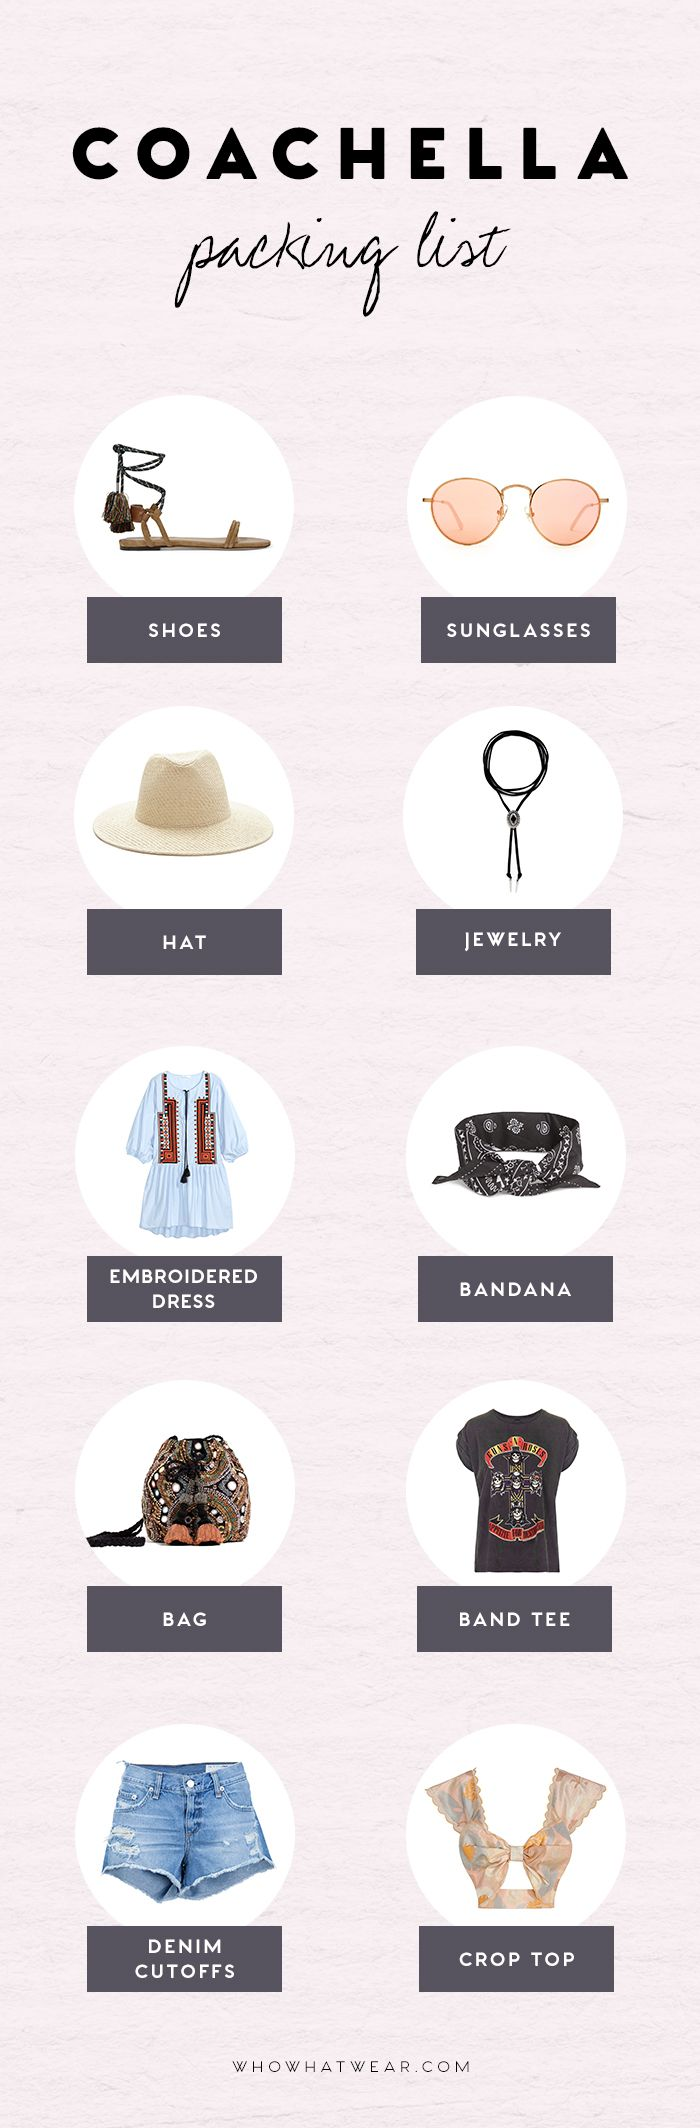 Do you have everything you need for the next music festival?  #BohoChic #FestivalStyle #FestivalWear #MusicFestival #MusicFestivalStyle #BohoStyle #Boho #FestivalFashion #Fashion #SummerFashion #SummerFestivalStyle #SummerStyle #YourRunway #CoquitlamCentre